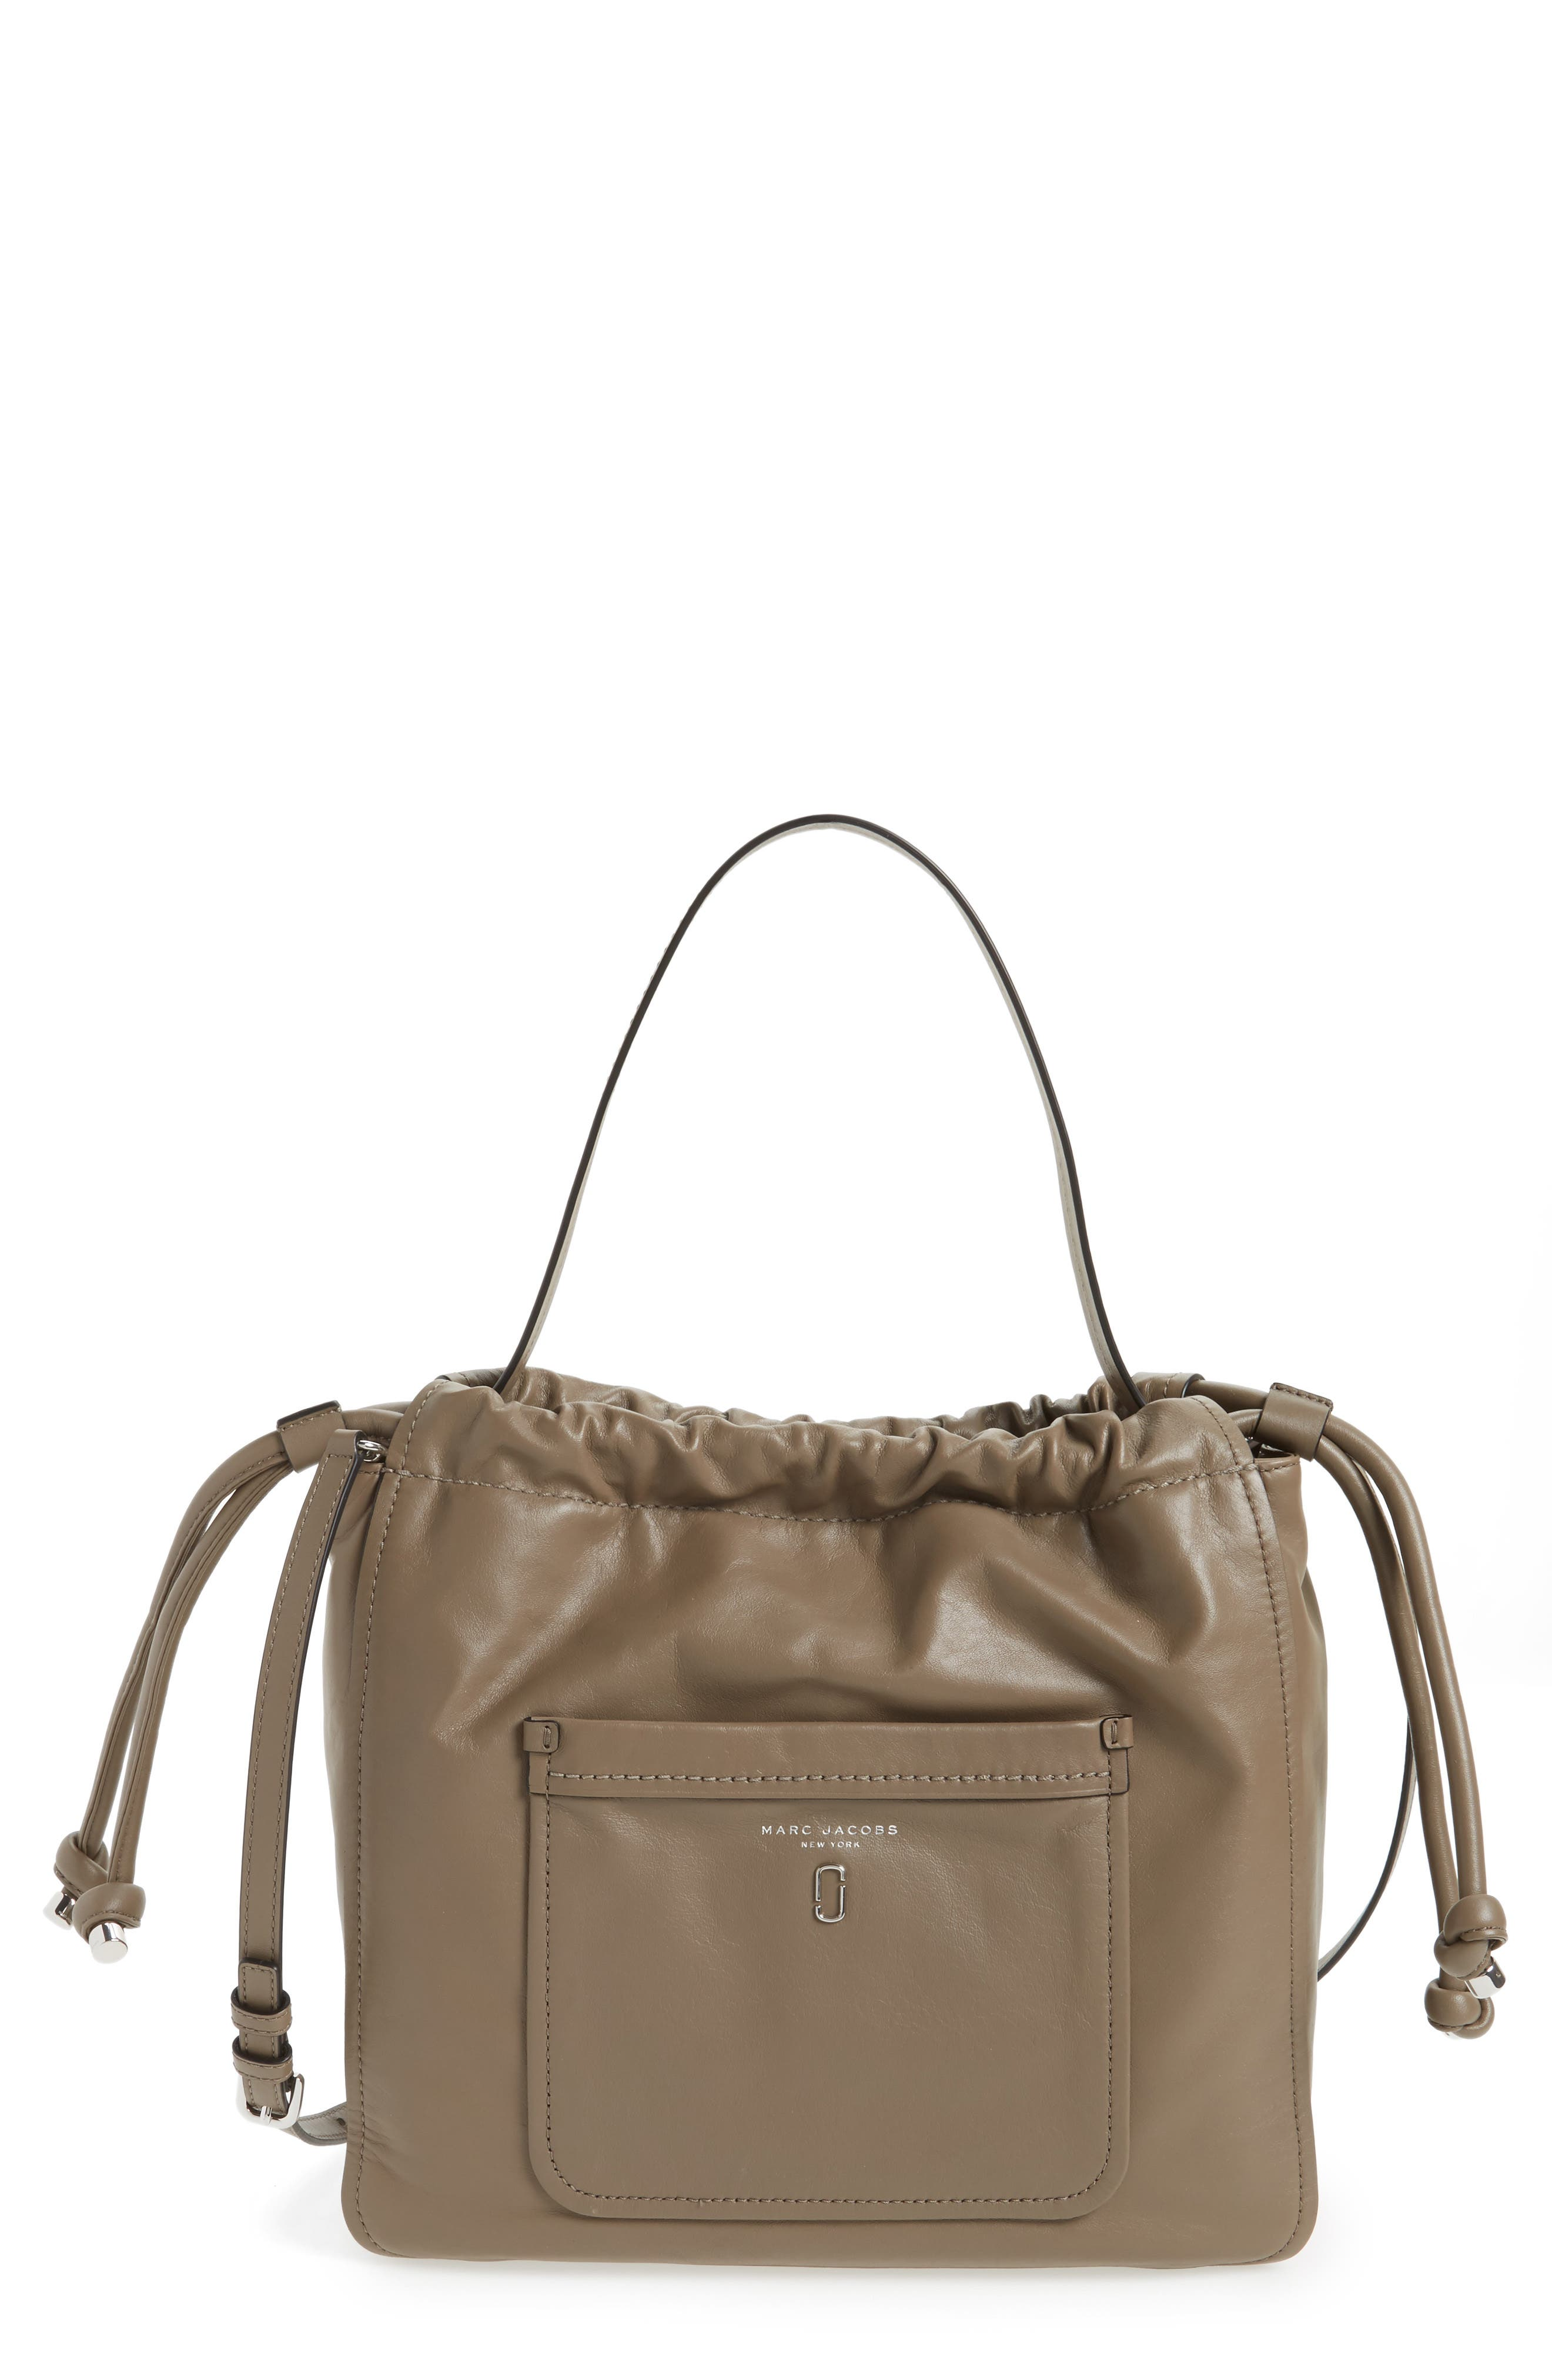 MARC JACOBS Tied Up Leather Hobo